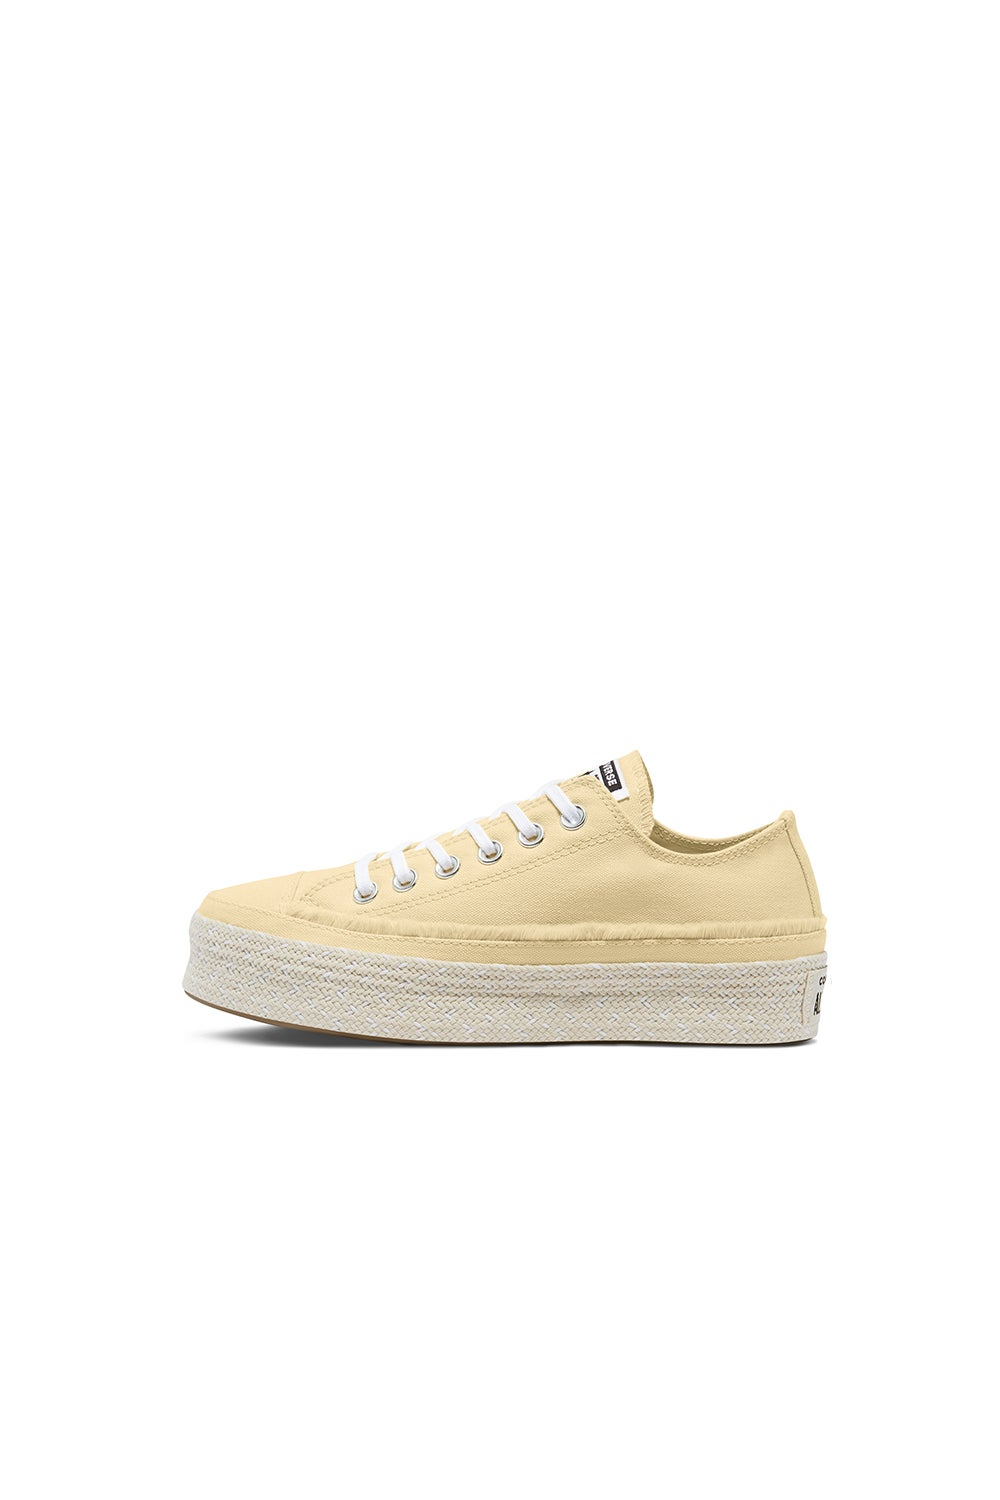 Converse Chuck Taylor All Star Espadrille Playform Low Top Banana Cake/White/Natural Ivory